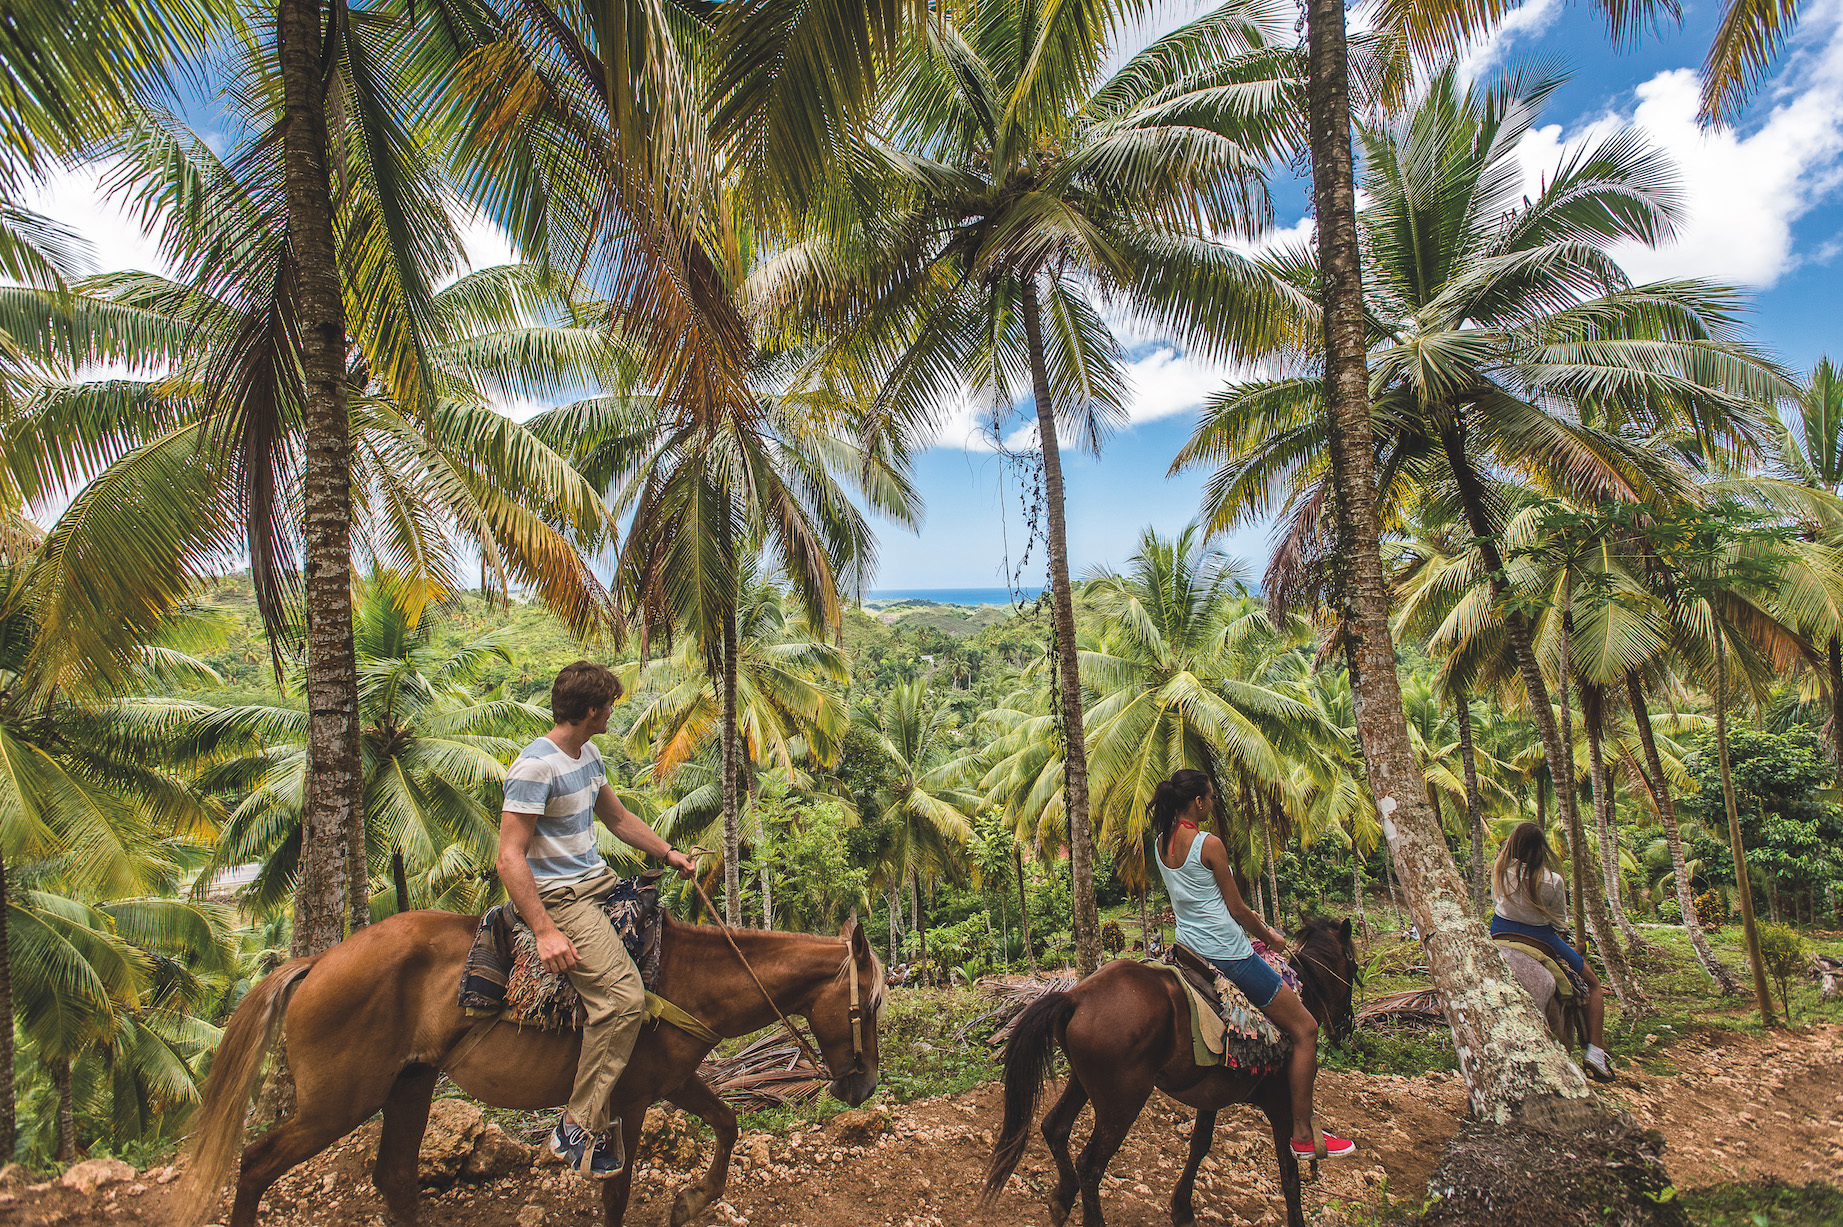 The five most Instagrammable places in the Dominican Republic